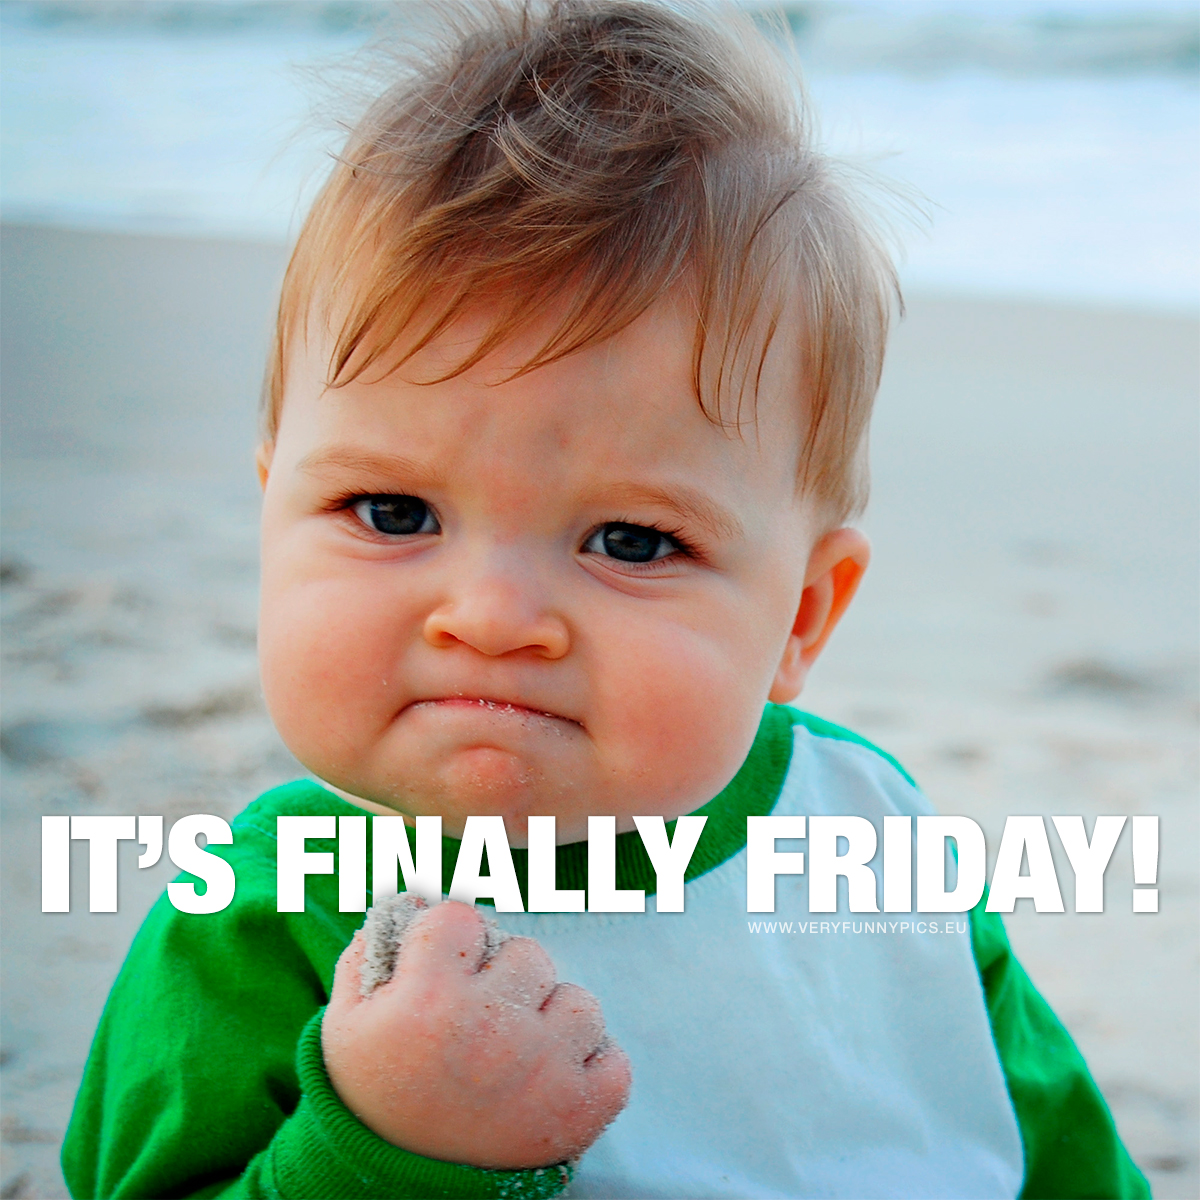 Cute kid makes a fist - It's finally friday!